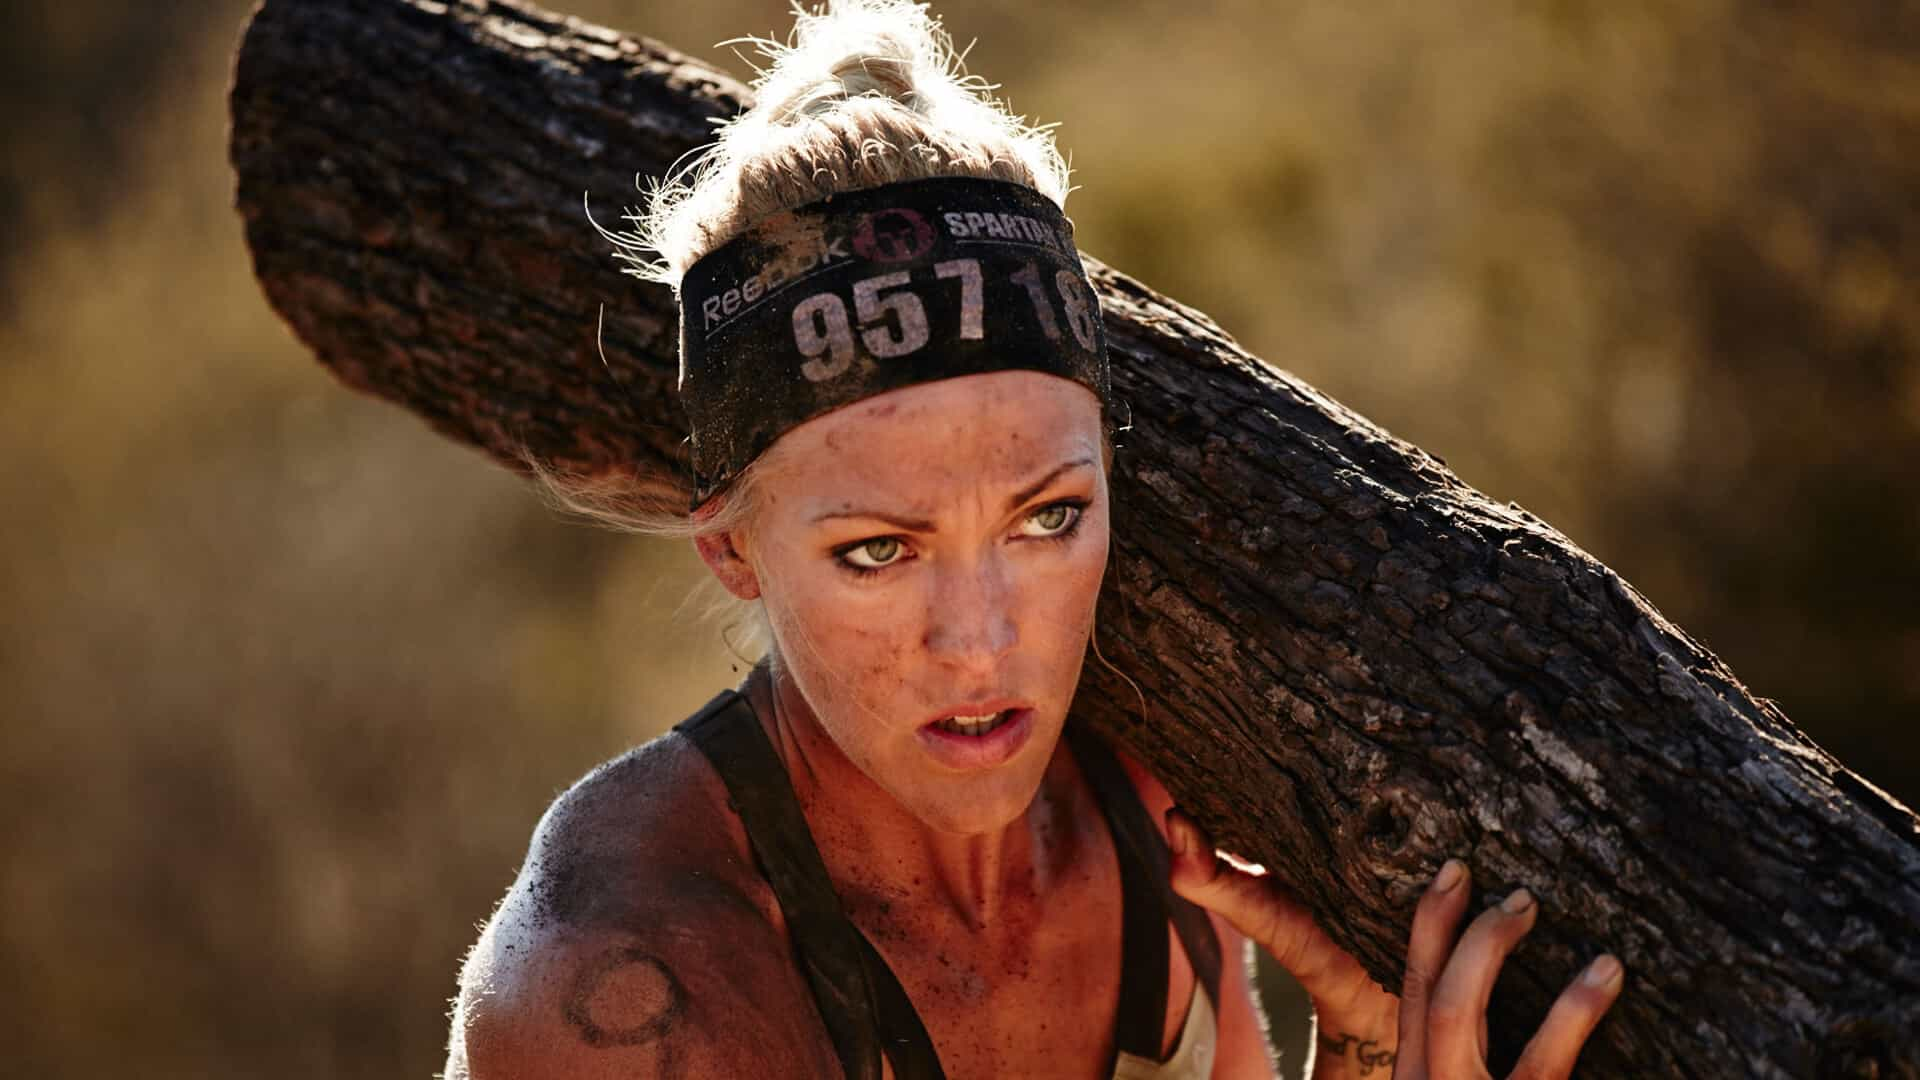 A Great 1-Month Training Plan for a Spartan Race  Available for ... eb8a05d79